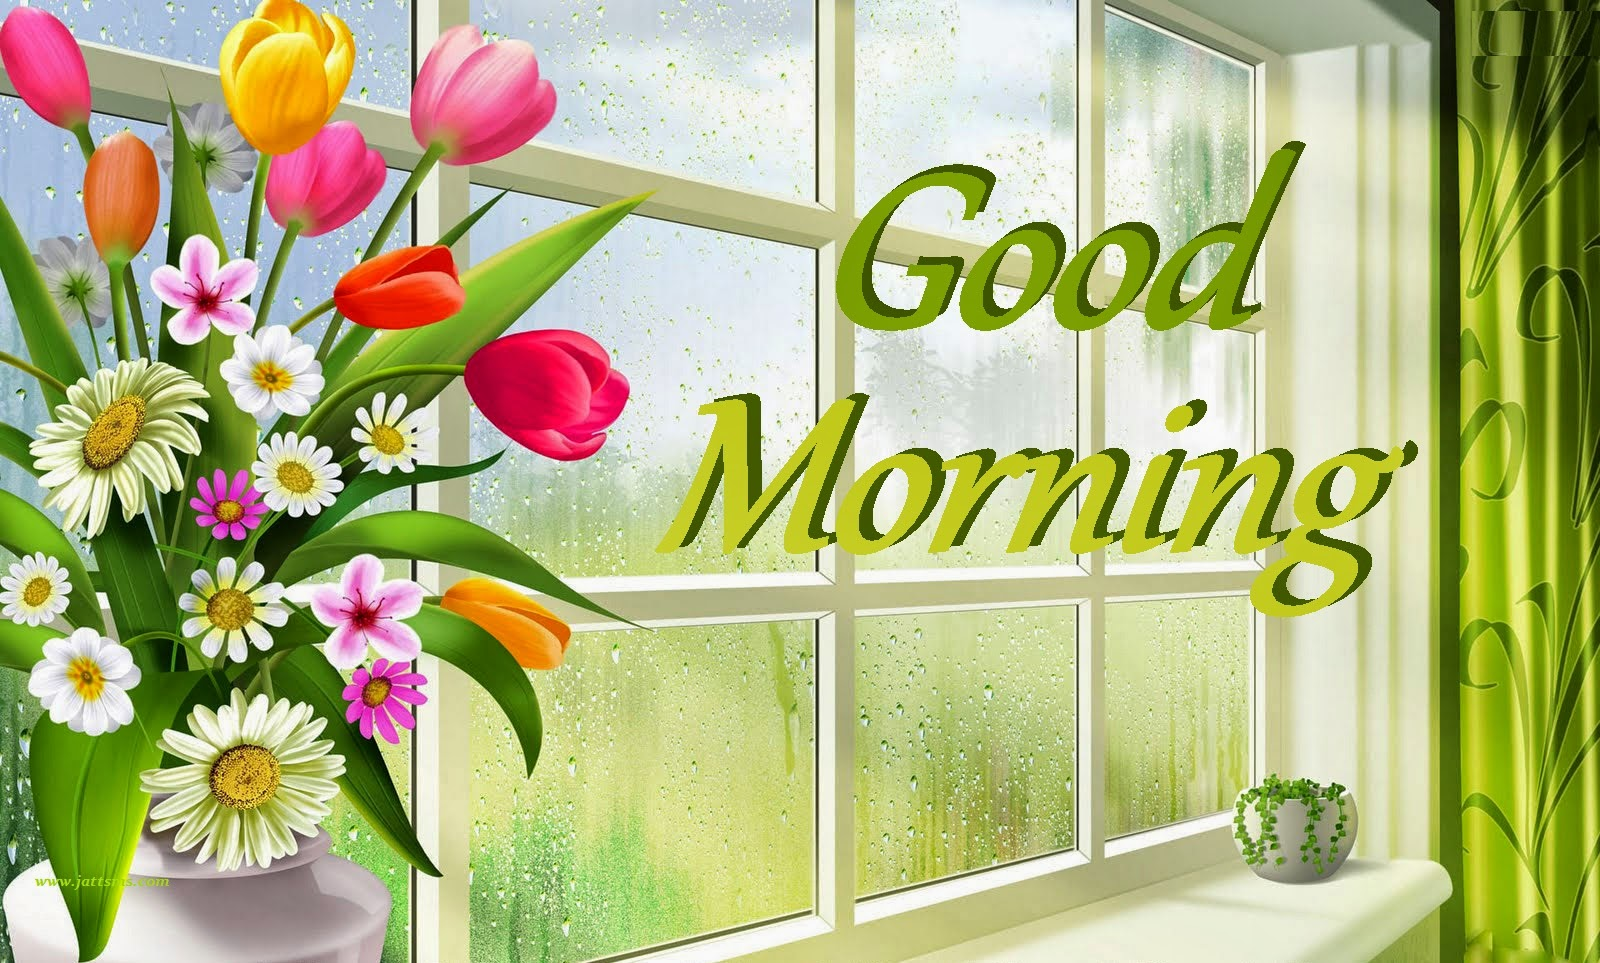 Good Morning Latest Wallpaper Download